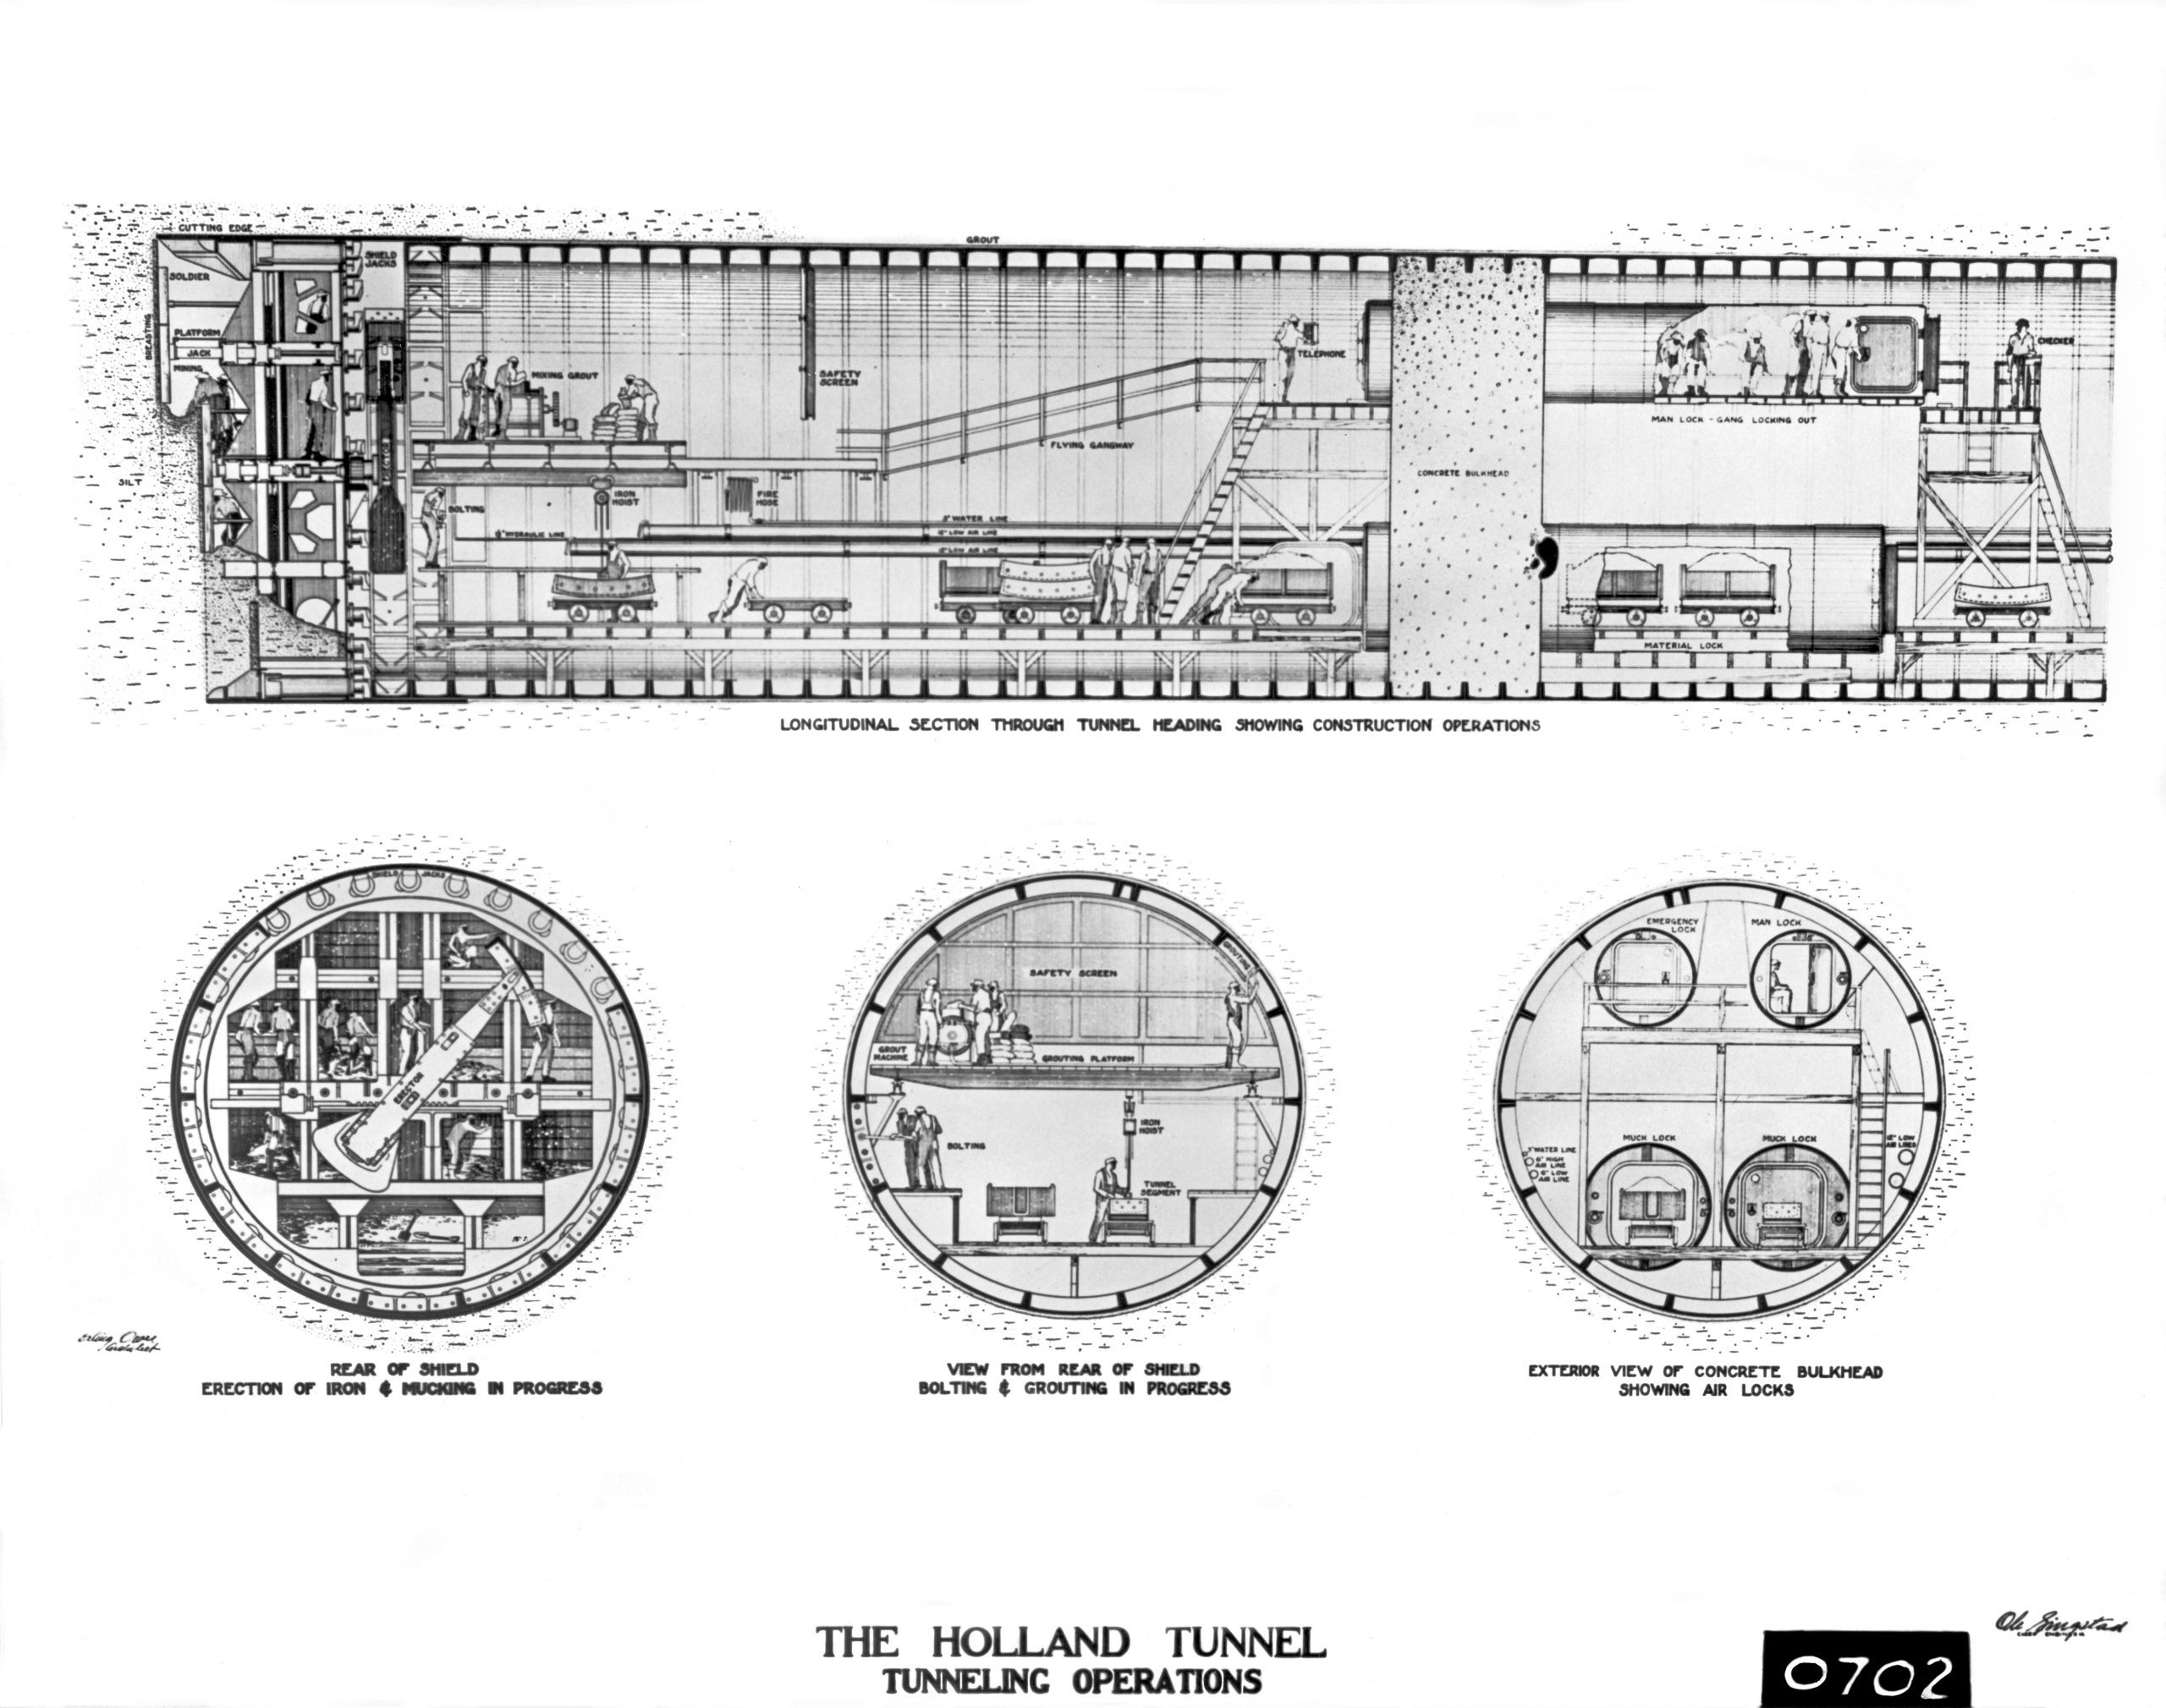 Holland Tunnel Construction Operation Drawings